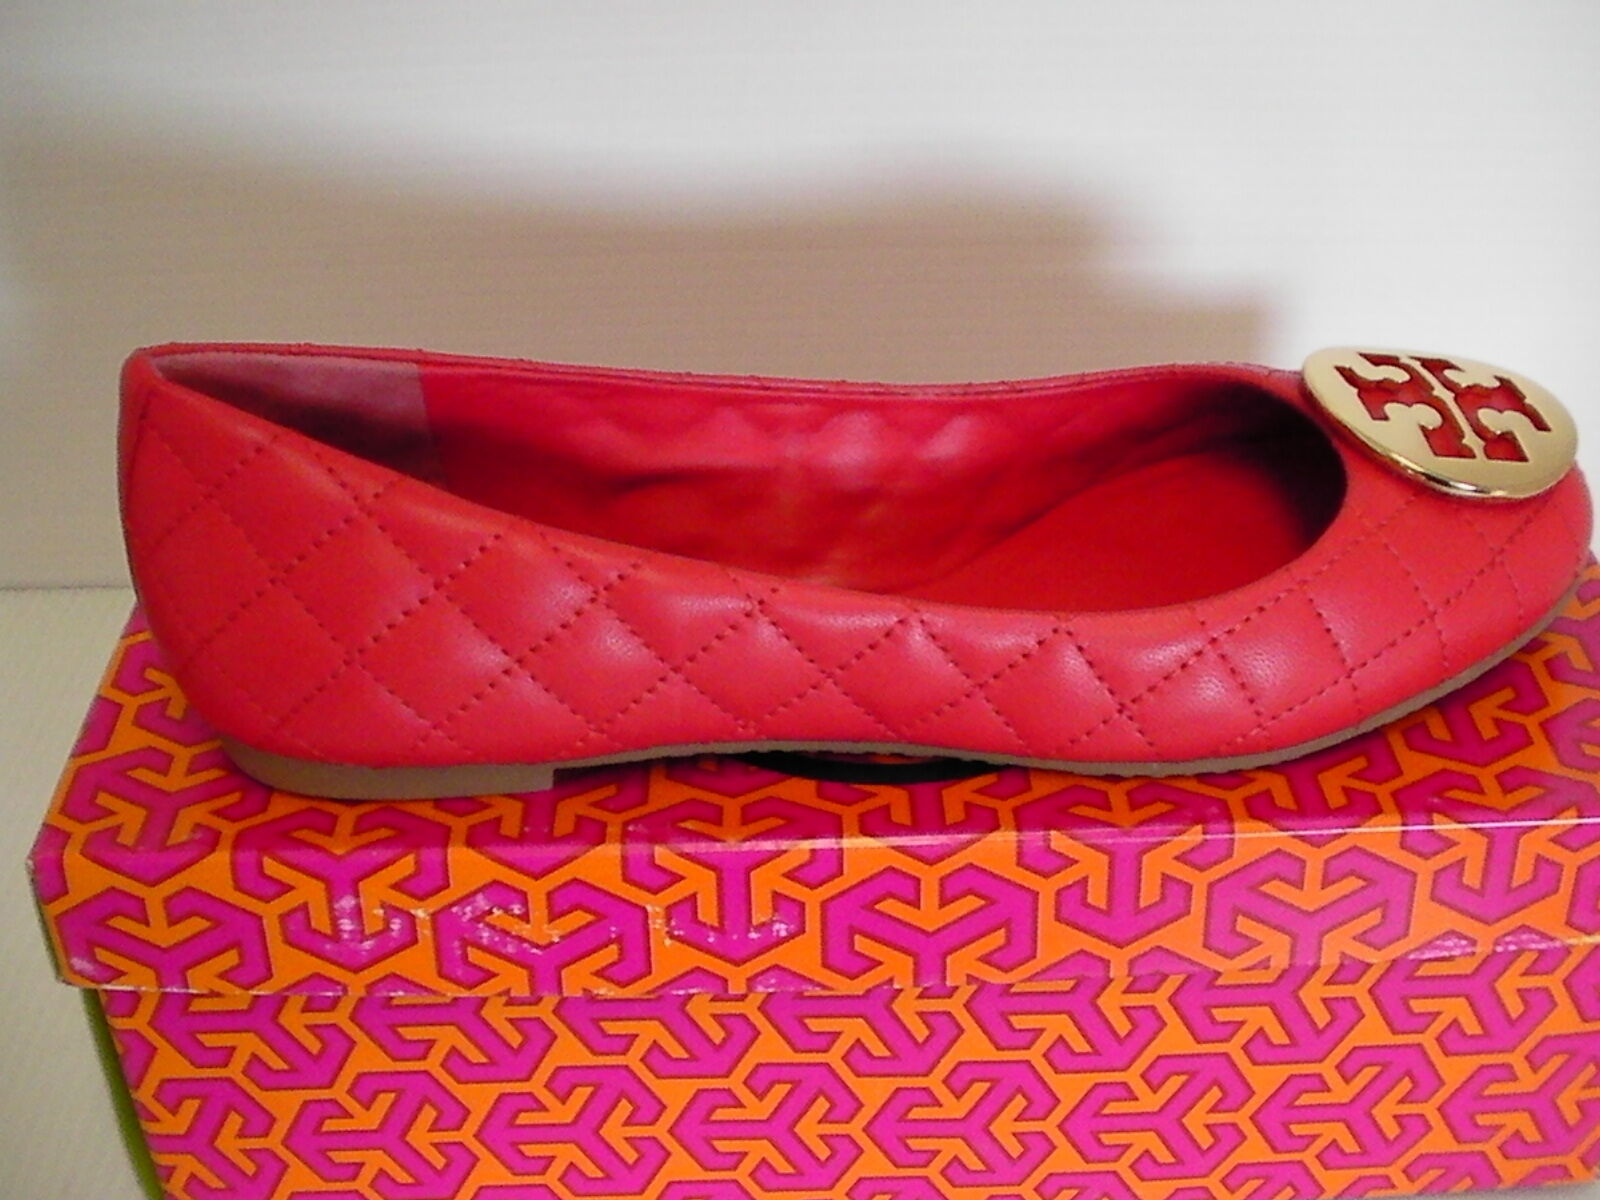 women's tory burch flats carnival/gold mestico/metal logo size 8.5 us new